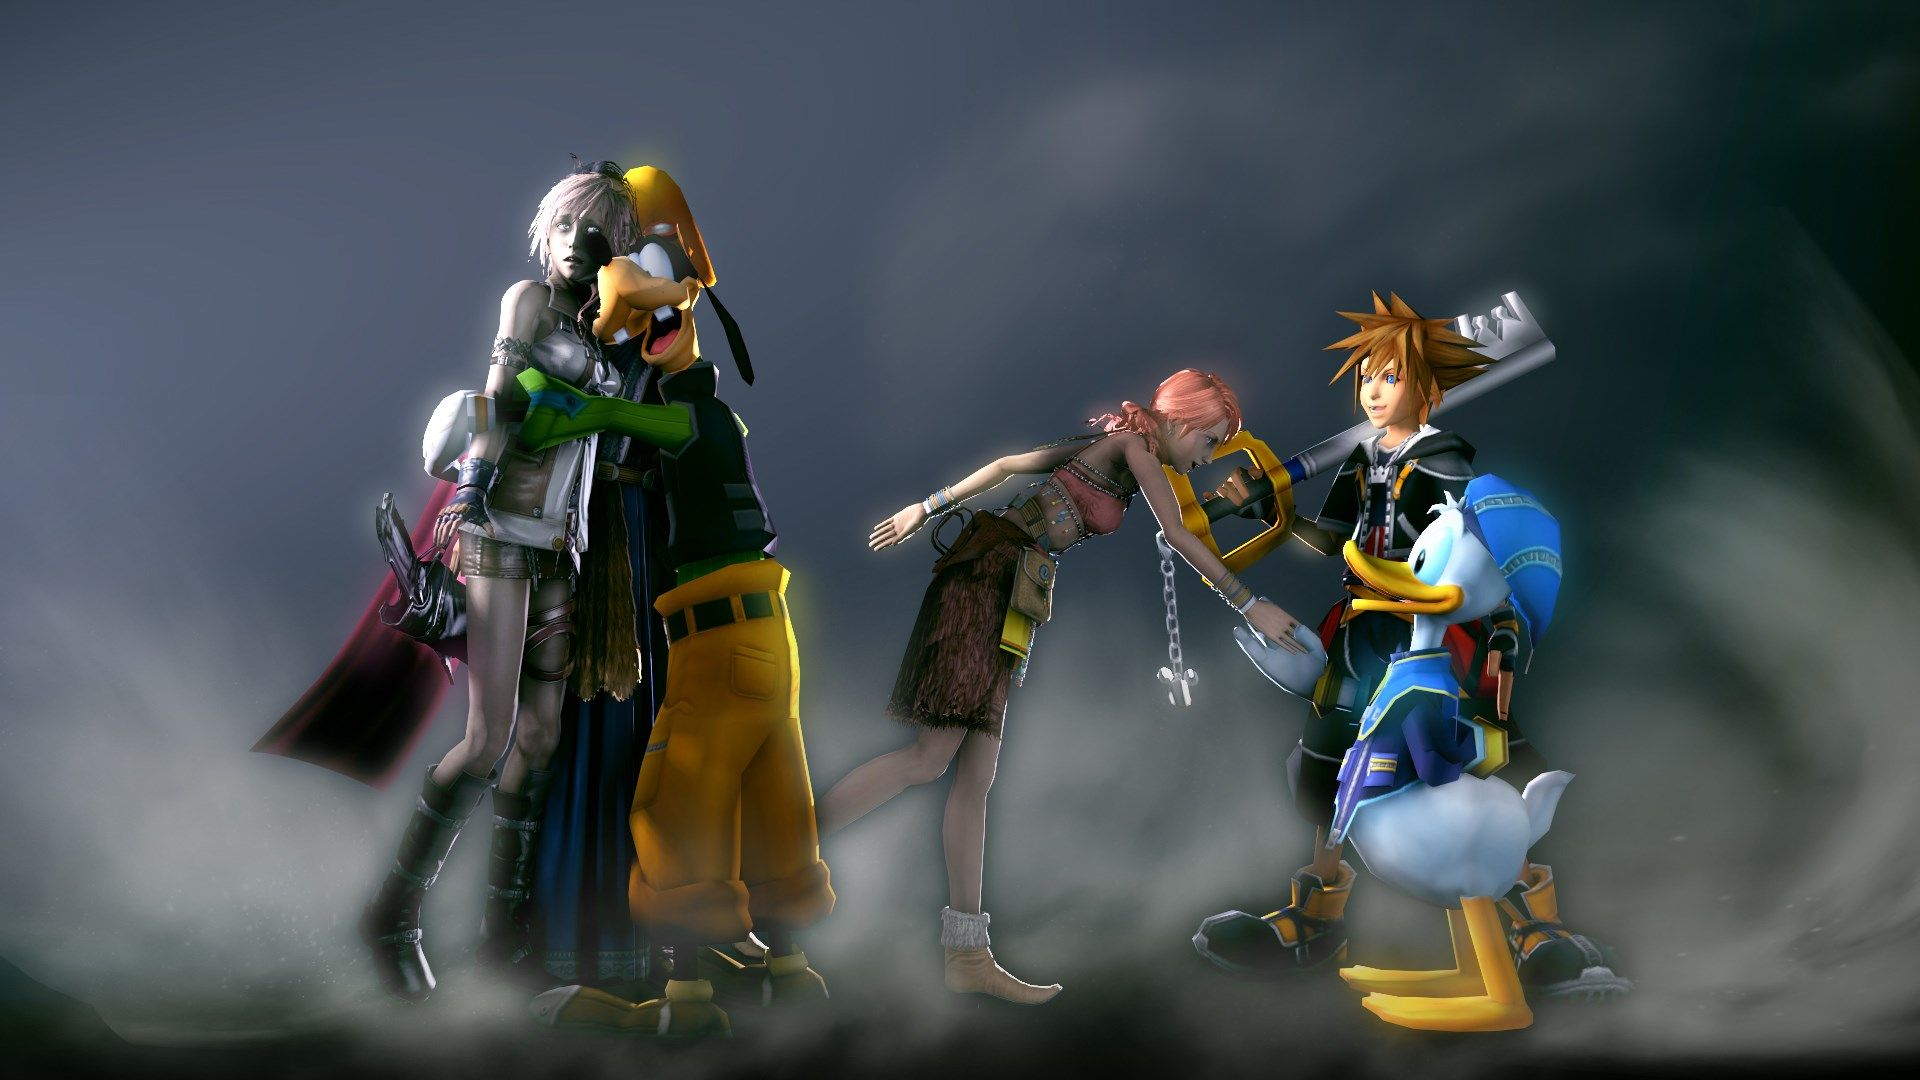 1920x1080 Kingdom Hearts Picture Images Jpg 205 Kb Kingdom Hearts Wallpaper Heart Pictures Kingdom Hearts